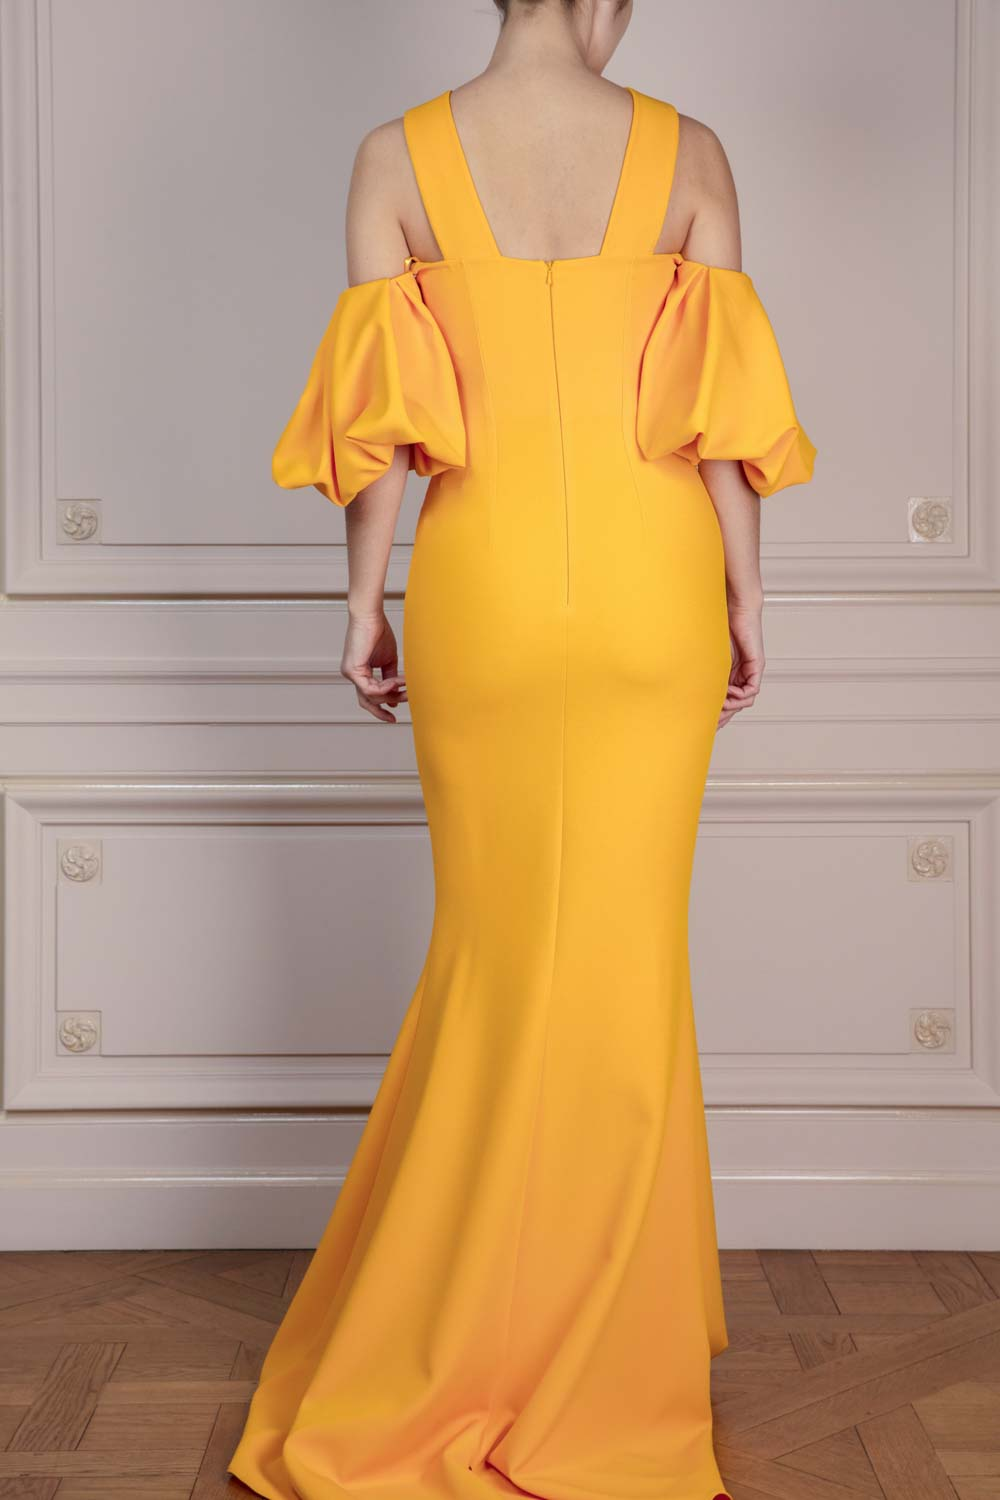 Floor-length gown in Marigold Yellow stretch crepe with boat neckline, open shoulders, pleated balloon sleeves and a fishtail train.